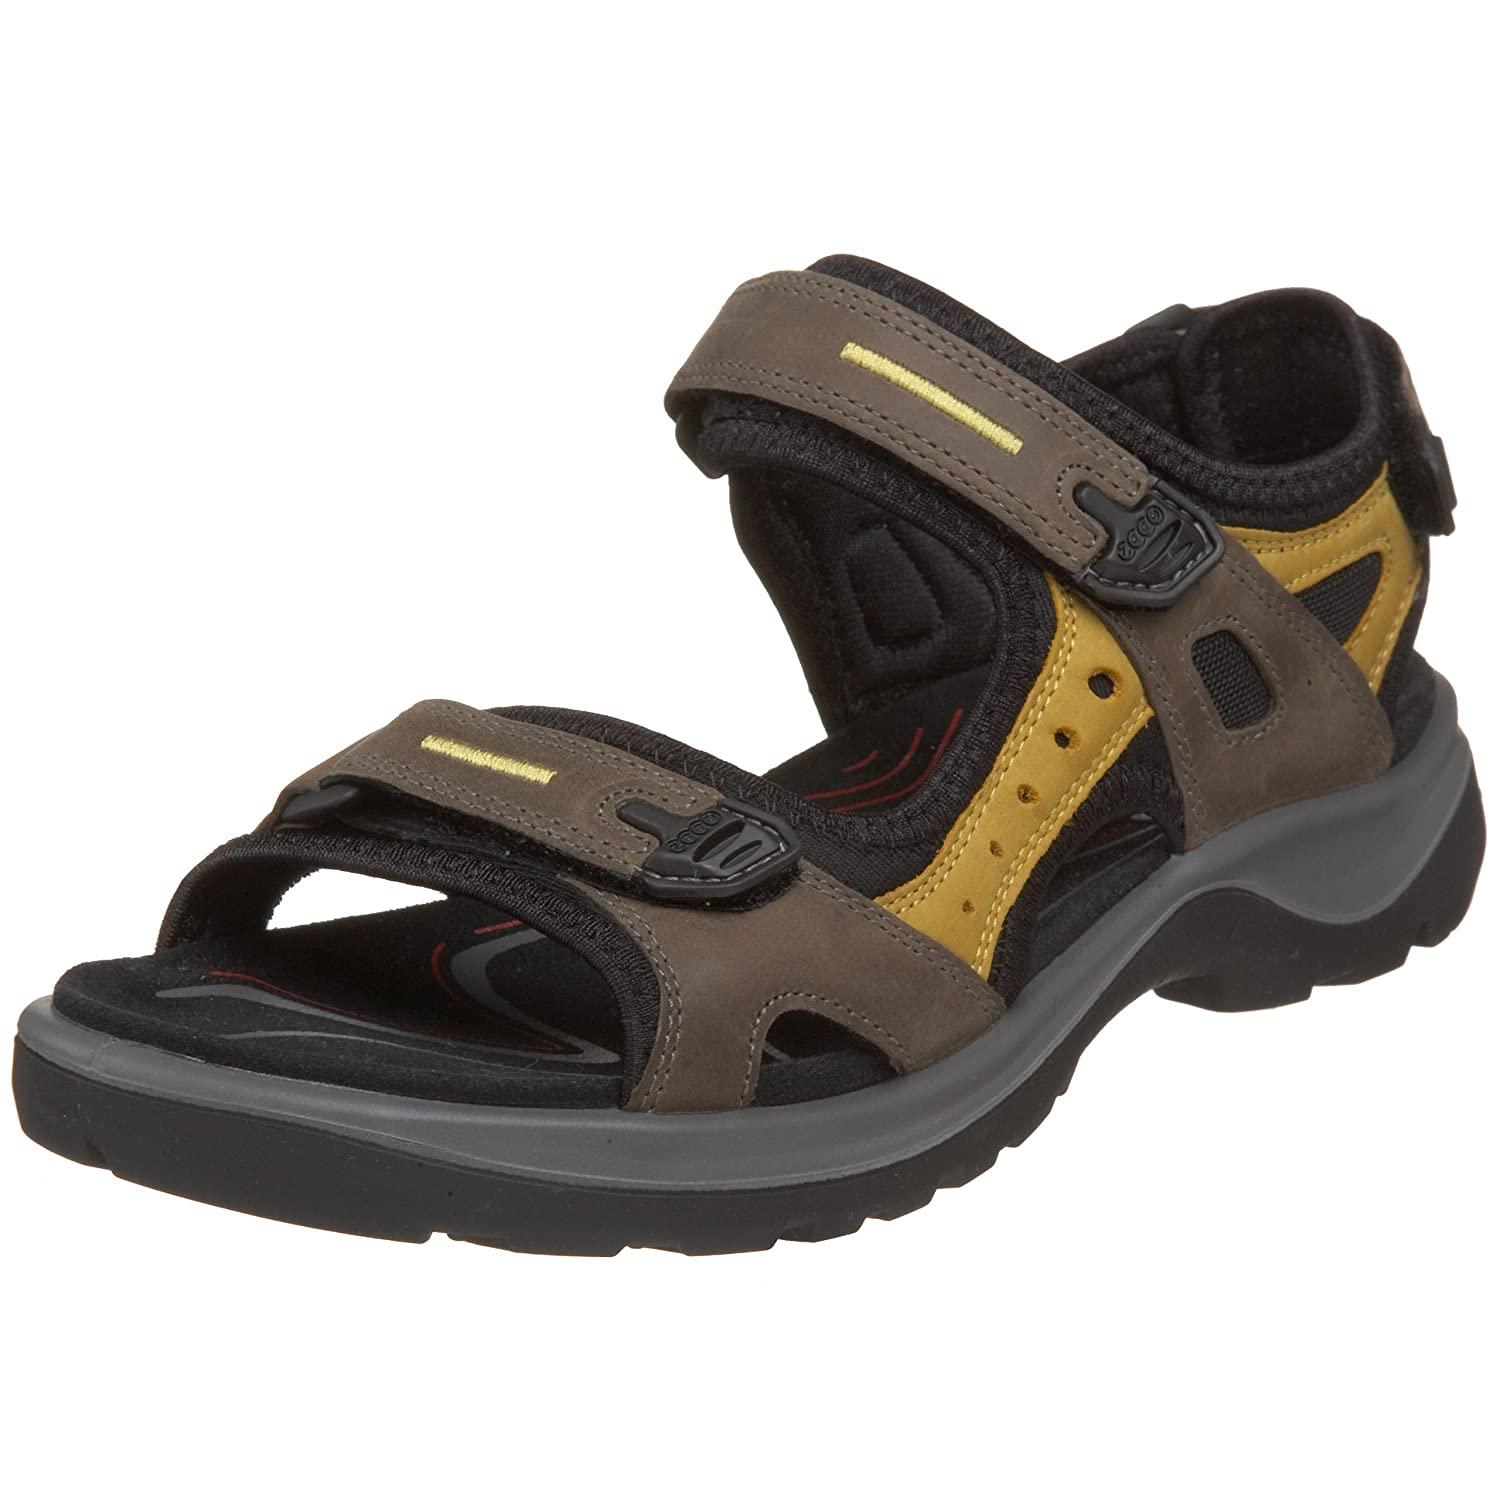 ECCO Offroad, Women's Athletic & Outdoor Sandals